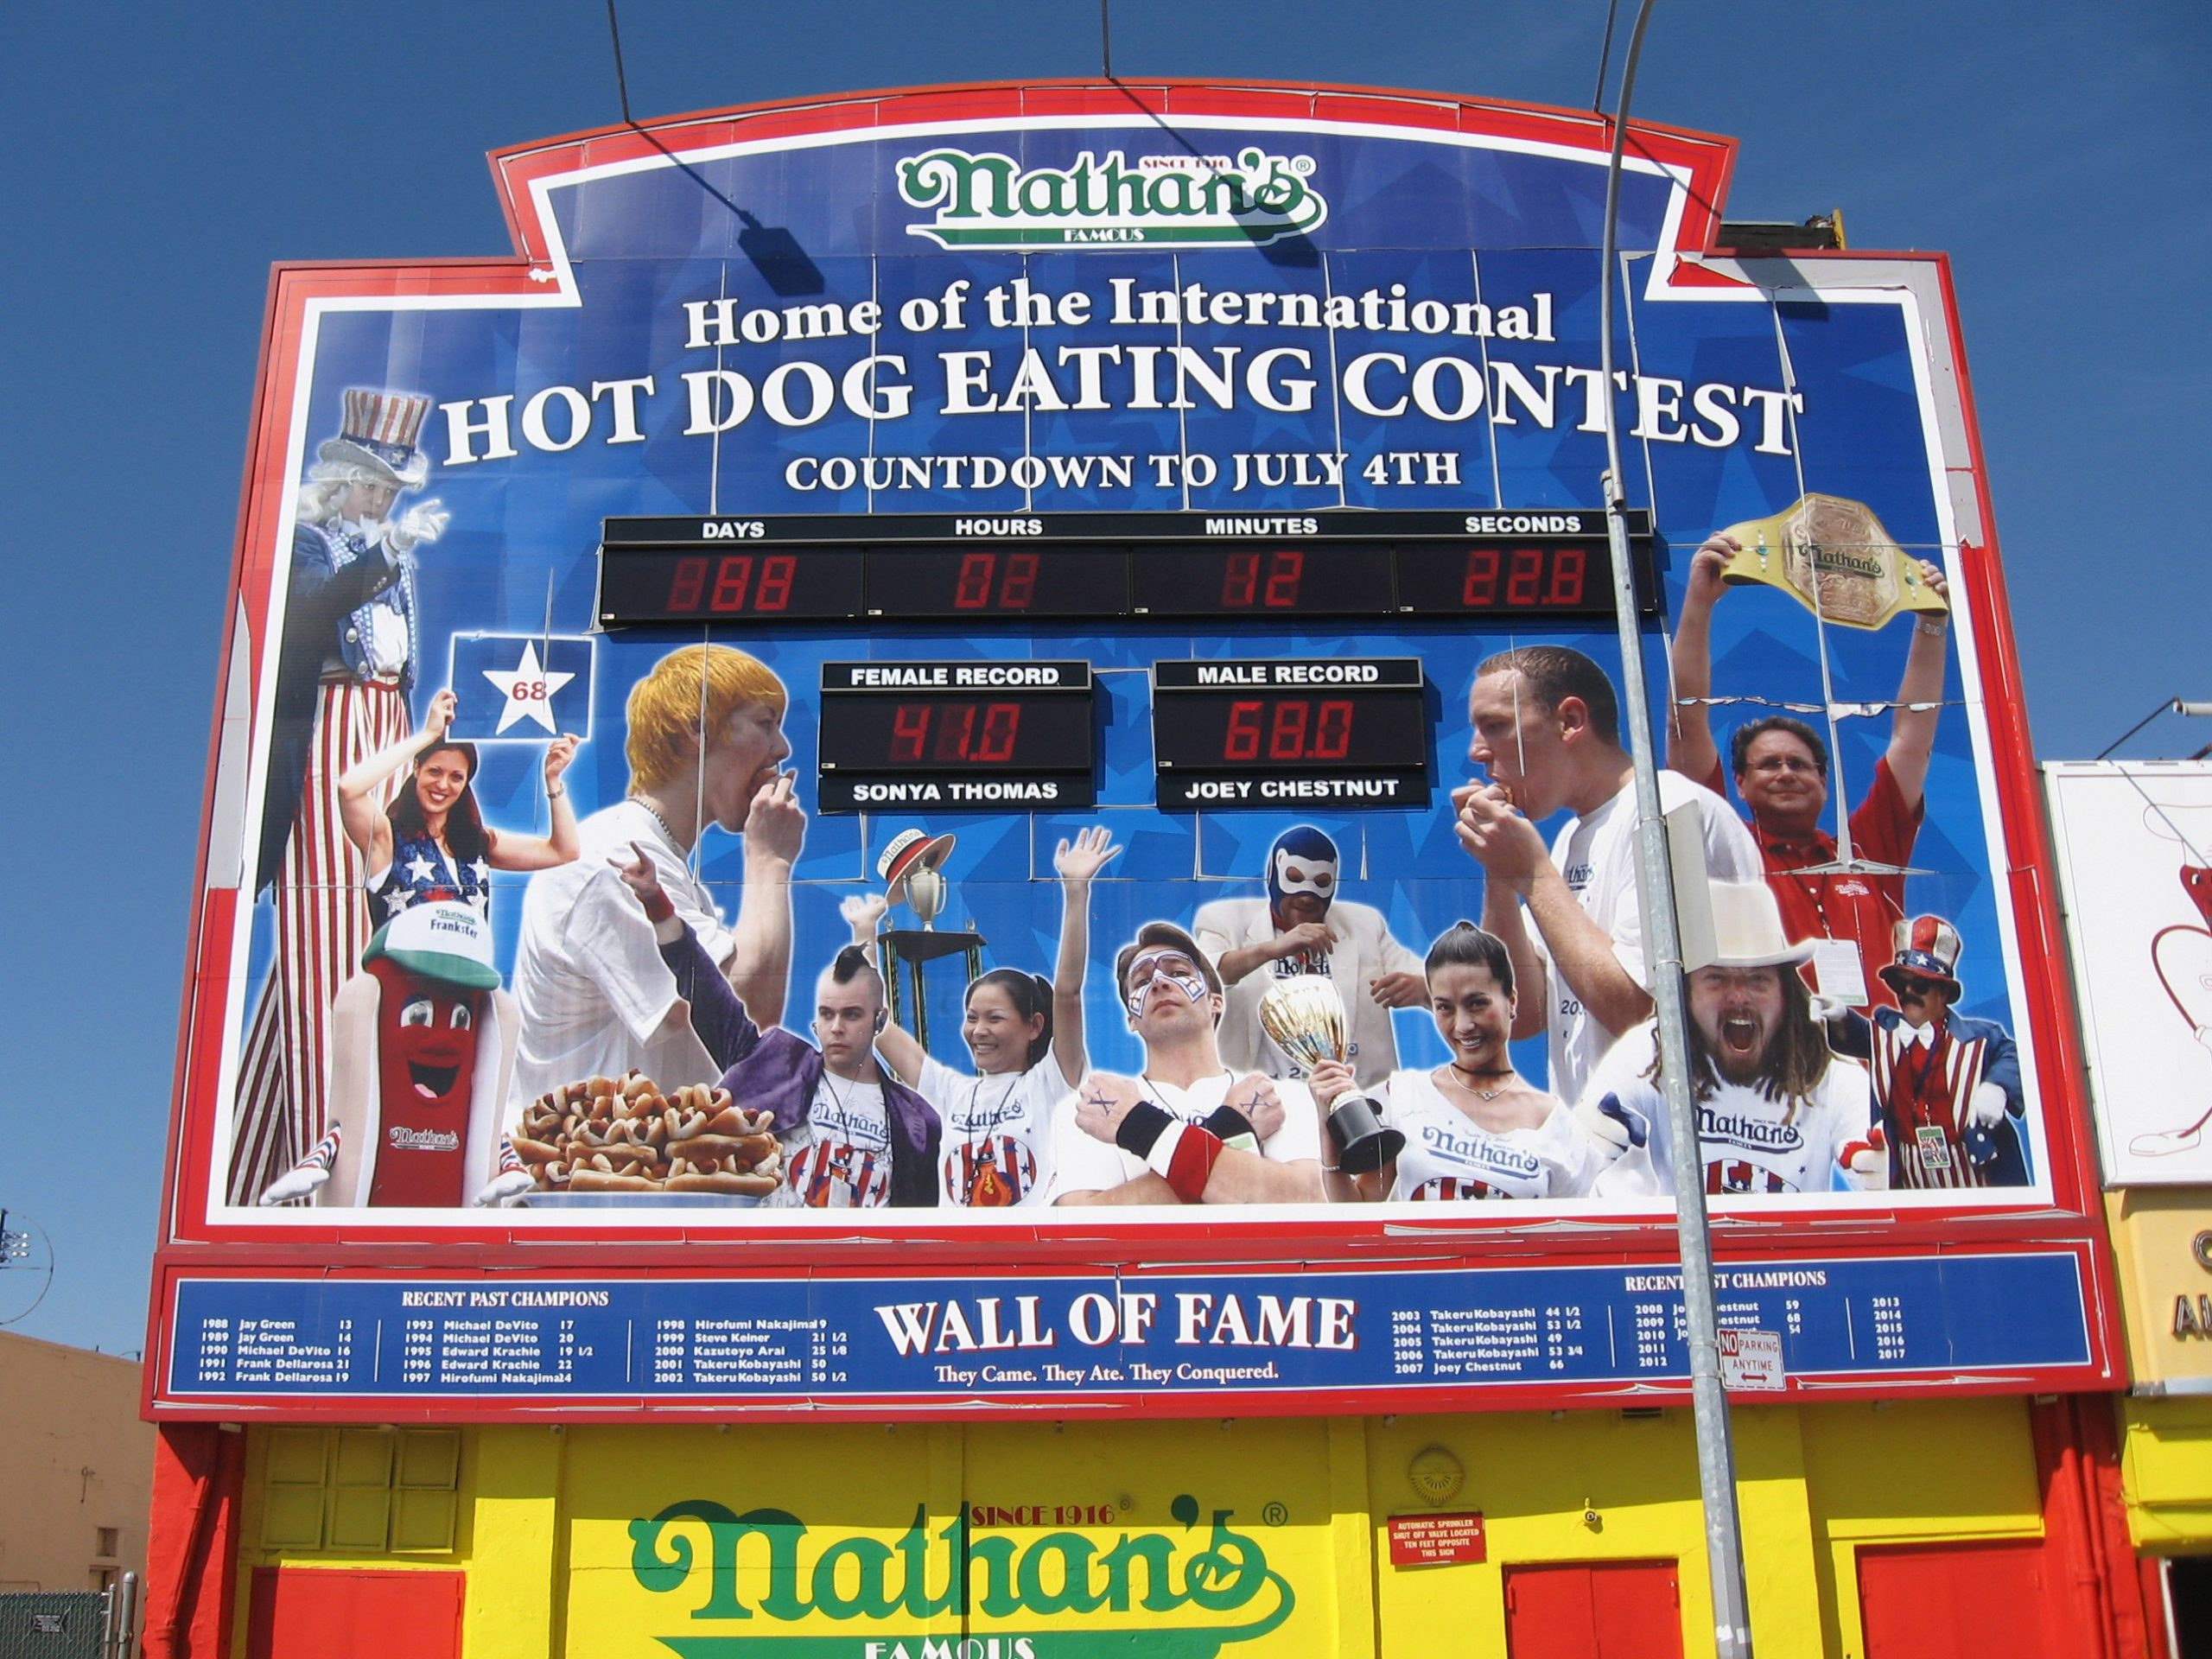 Nathan's Contest 2020